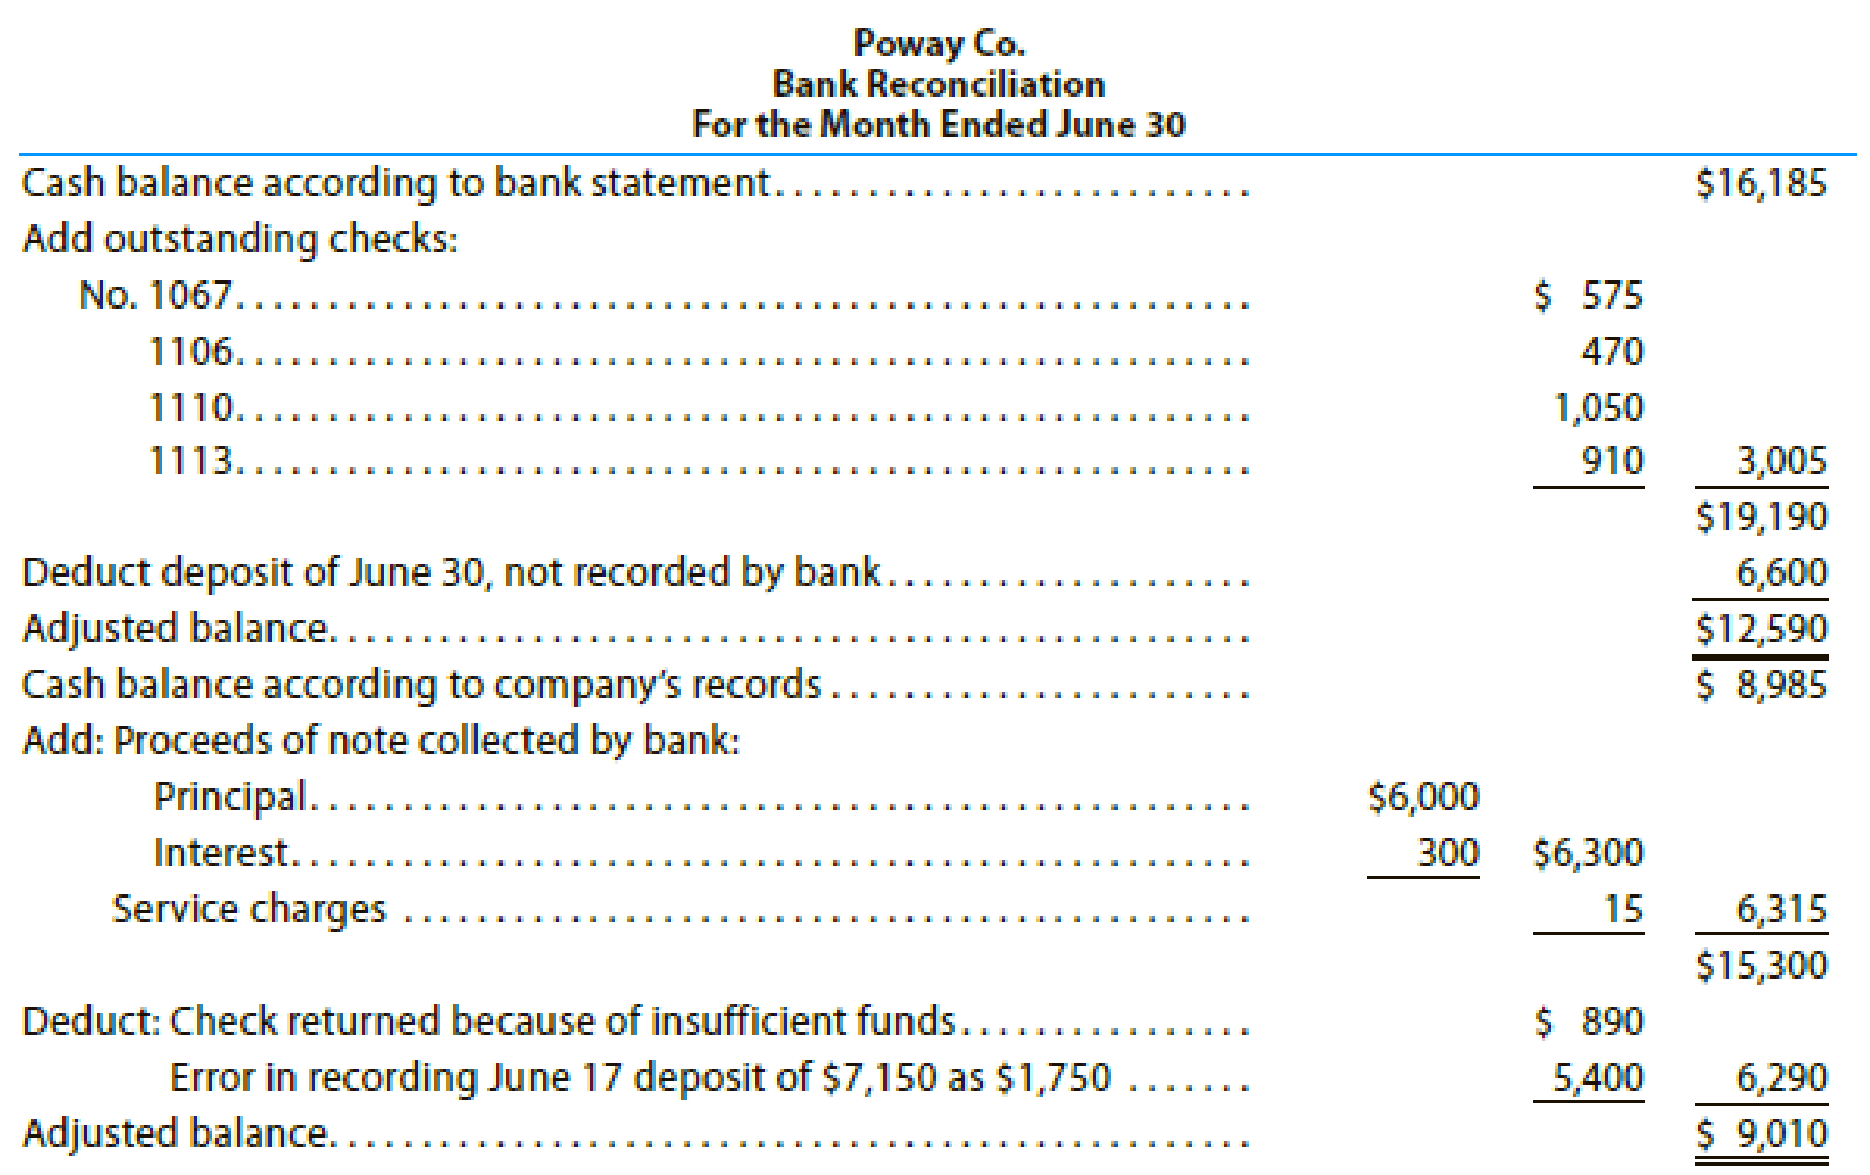 The Following June 30 Bank Reconciliation Was Prepared For